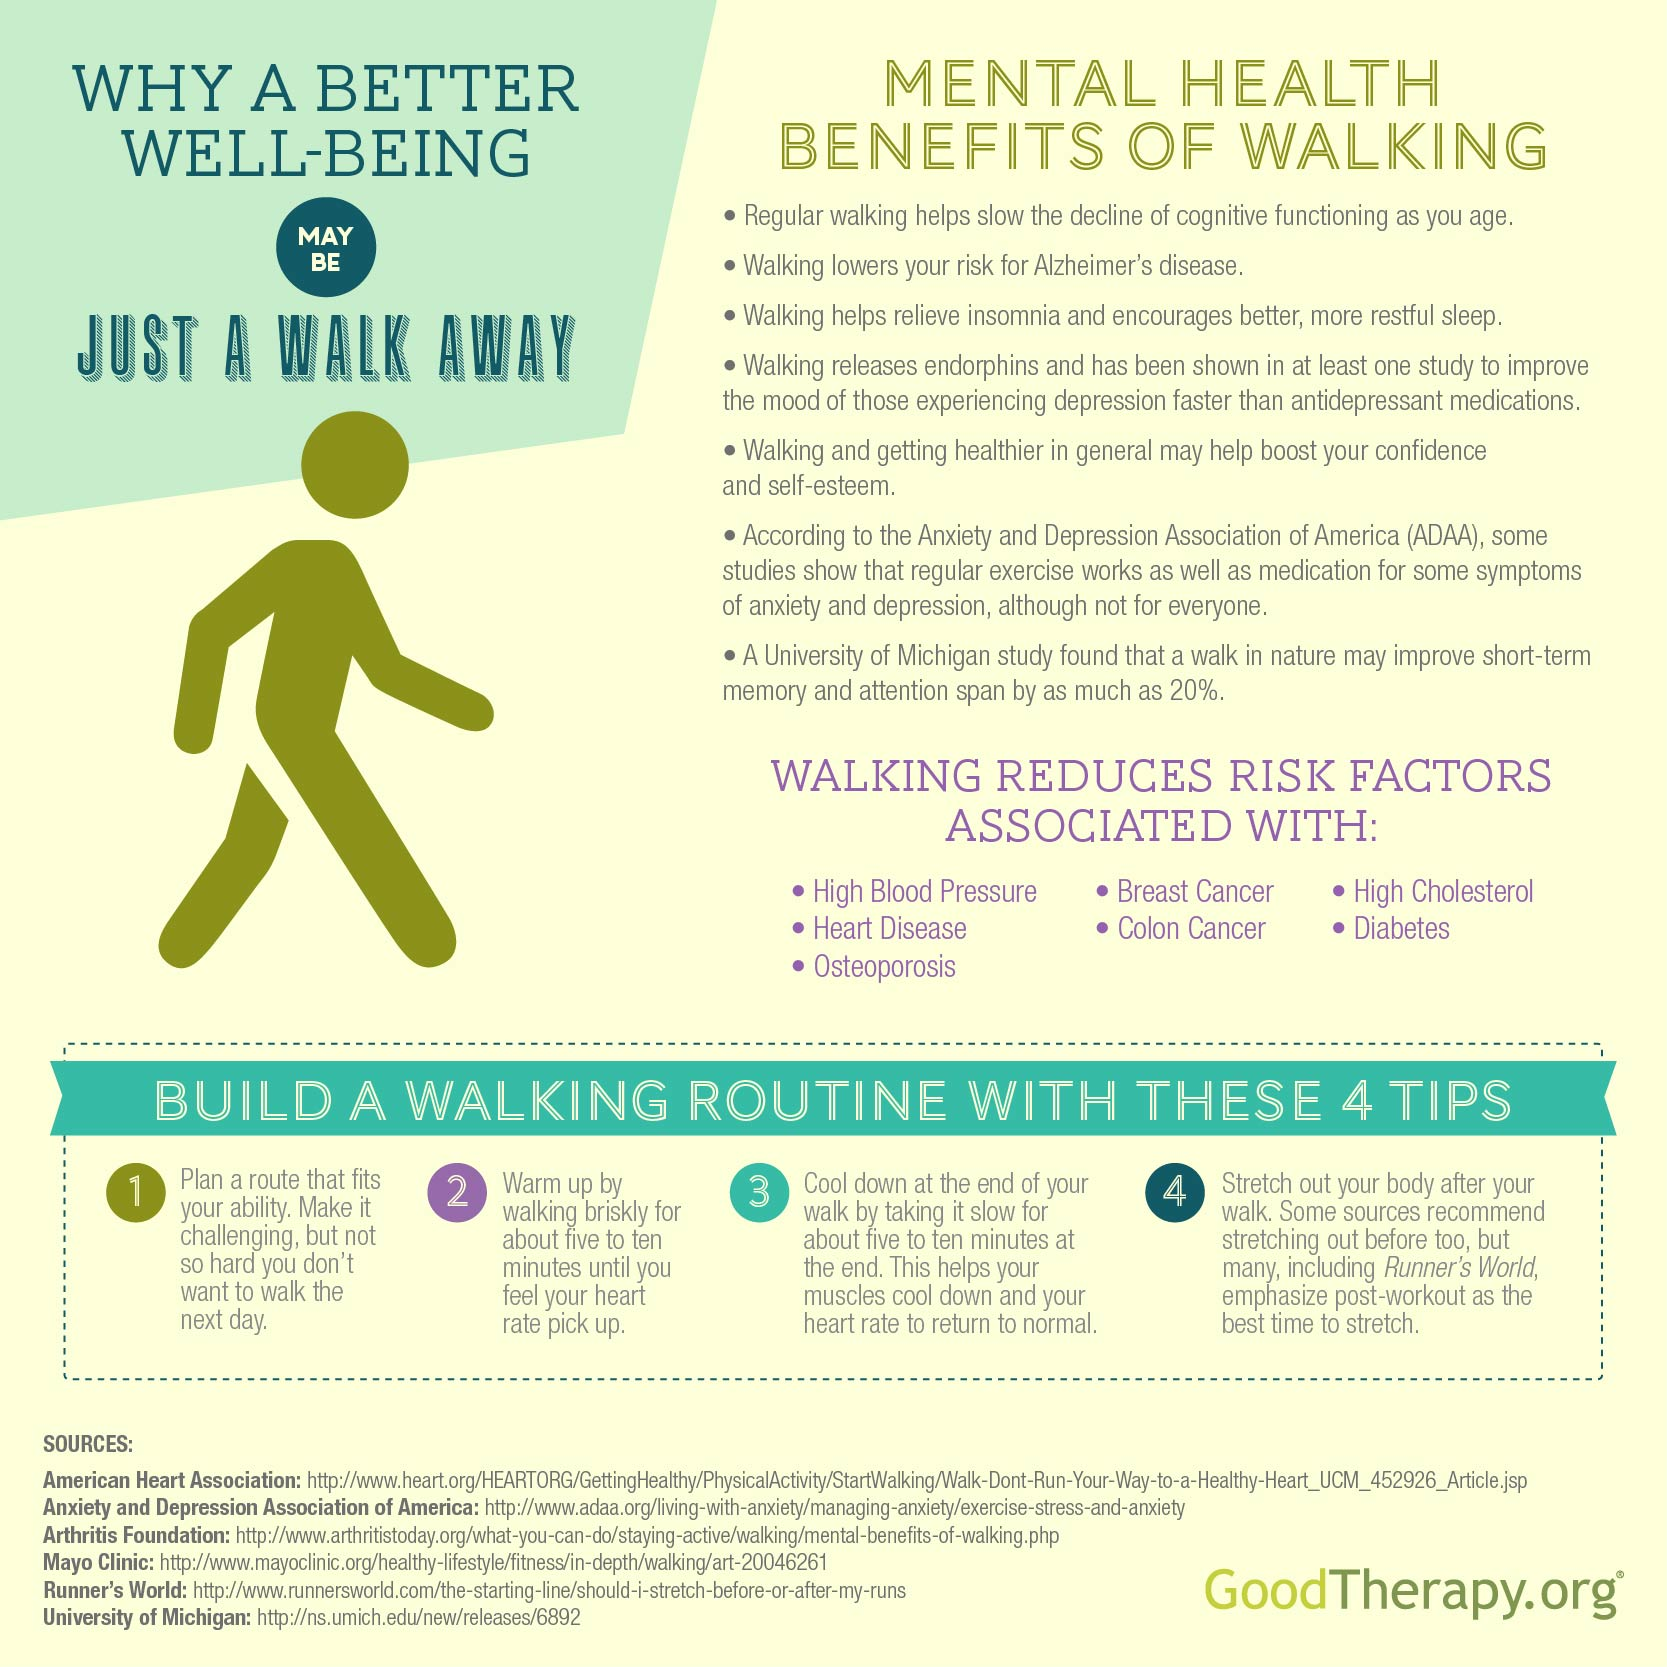 Why A Better Well Being May Be Just A Walk Away Infographic